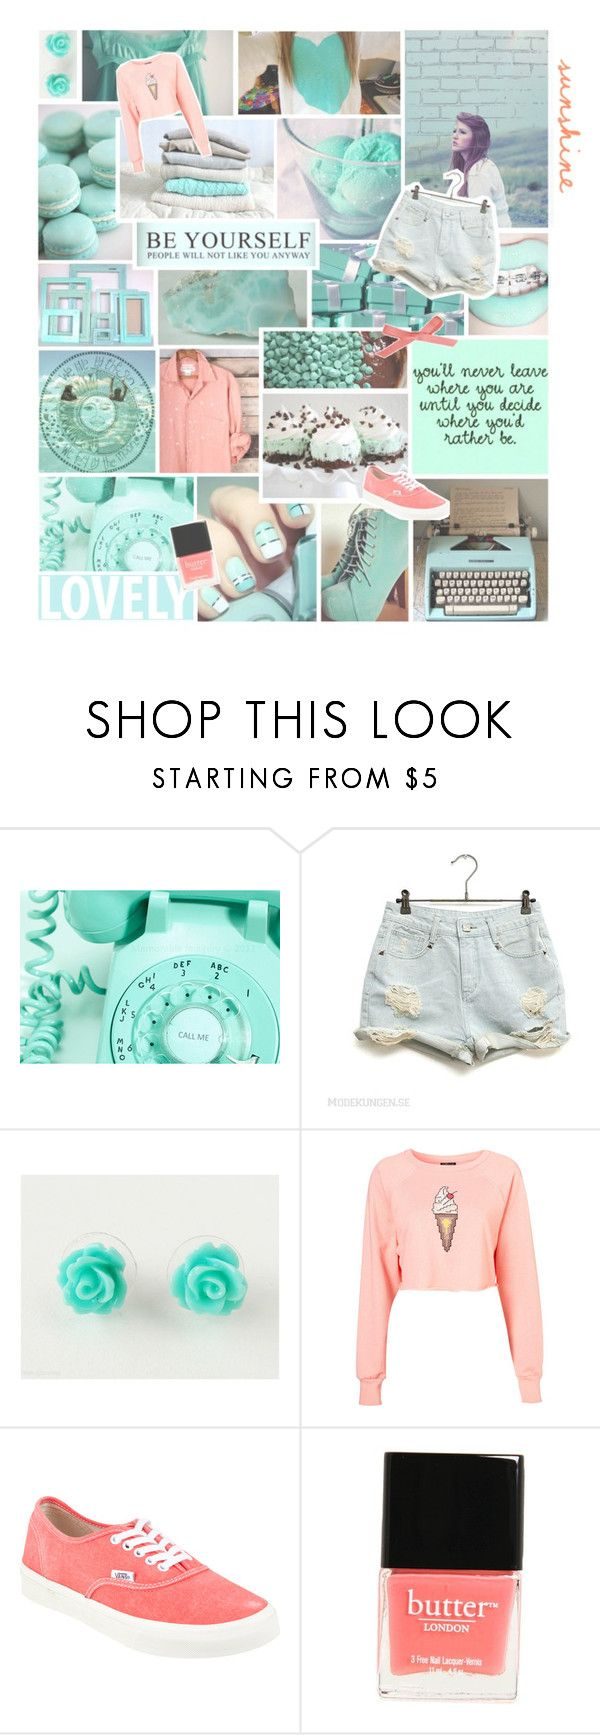 """~ My Oh My ~"" by colours-of-the-wind ❤ liked on Polyvore featuring Tiffany & Co., Vans, Butter London, vintage, women's clothing, women's fashion, women, female, woman and misses"